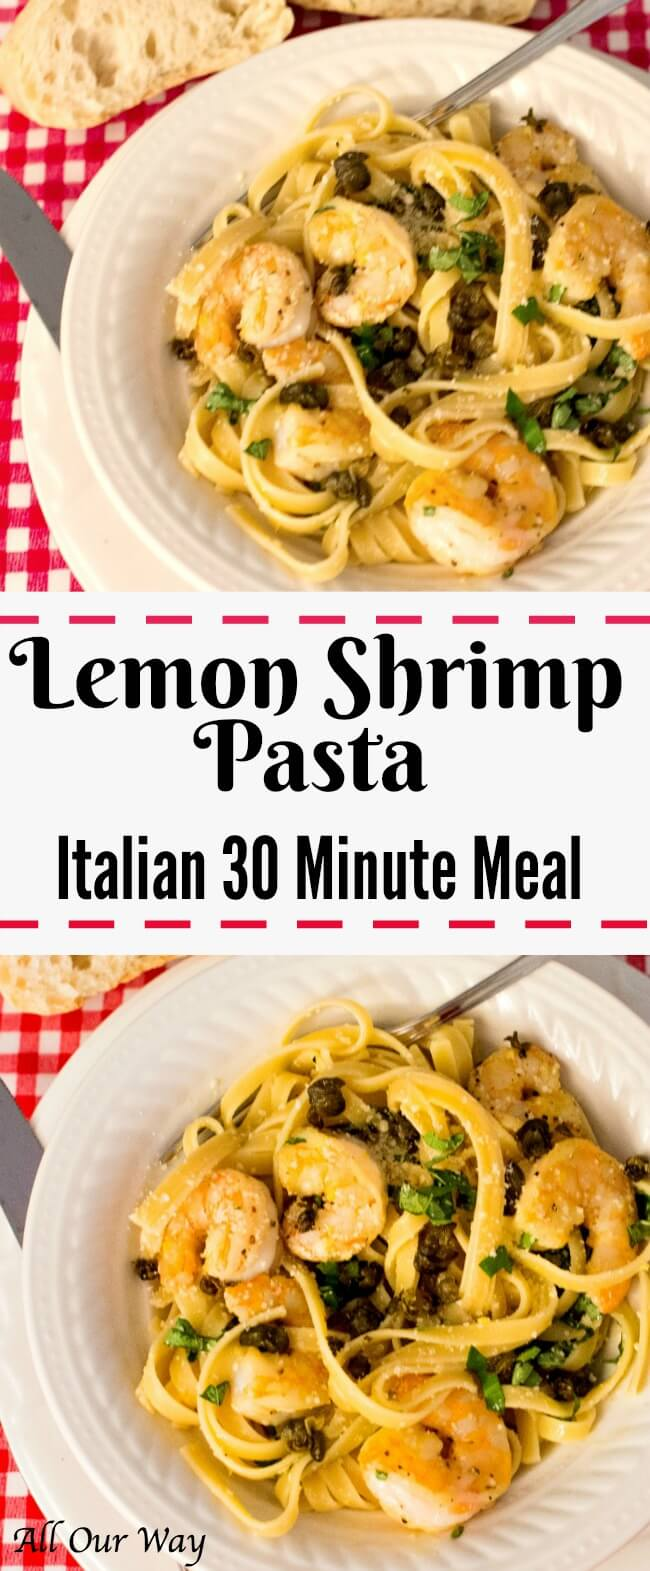 Lemon Shrimp Pasta is a healthy seafood pasta dish that comes together in 30 minutes. It's low calorie but full of the flavors of lemon, parmesan, basil and capers.